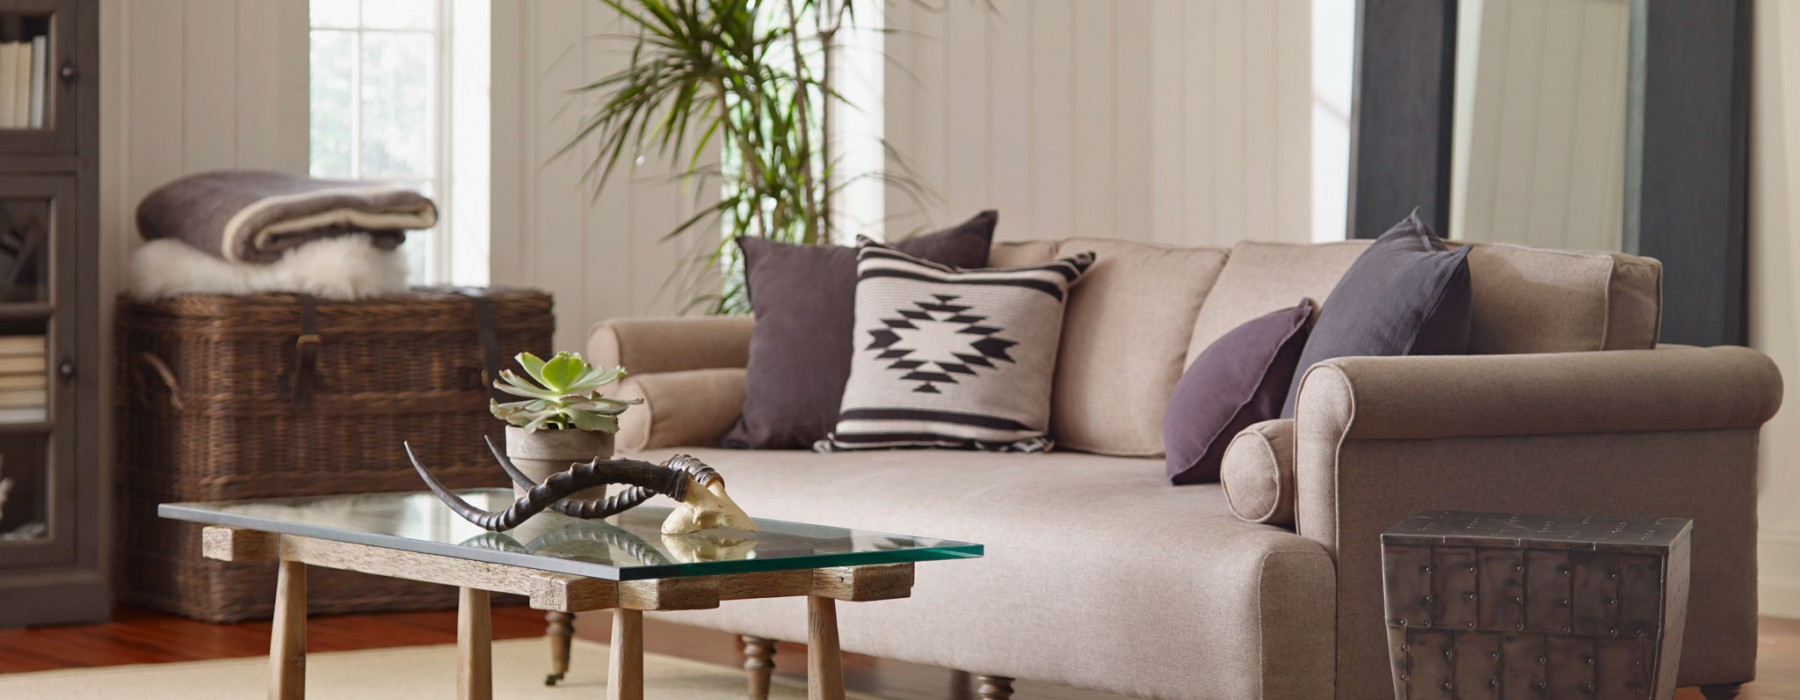 The Kathy Kuo Home Guide to Shopping for End Tables